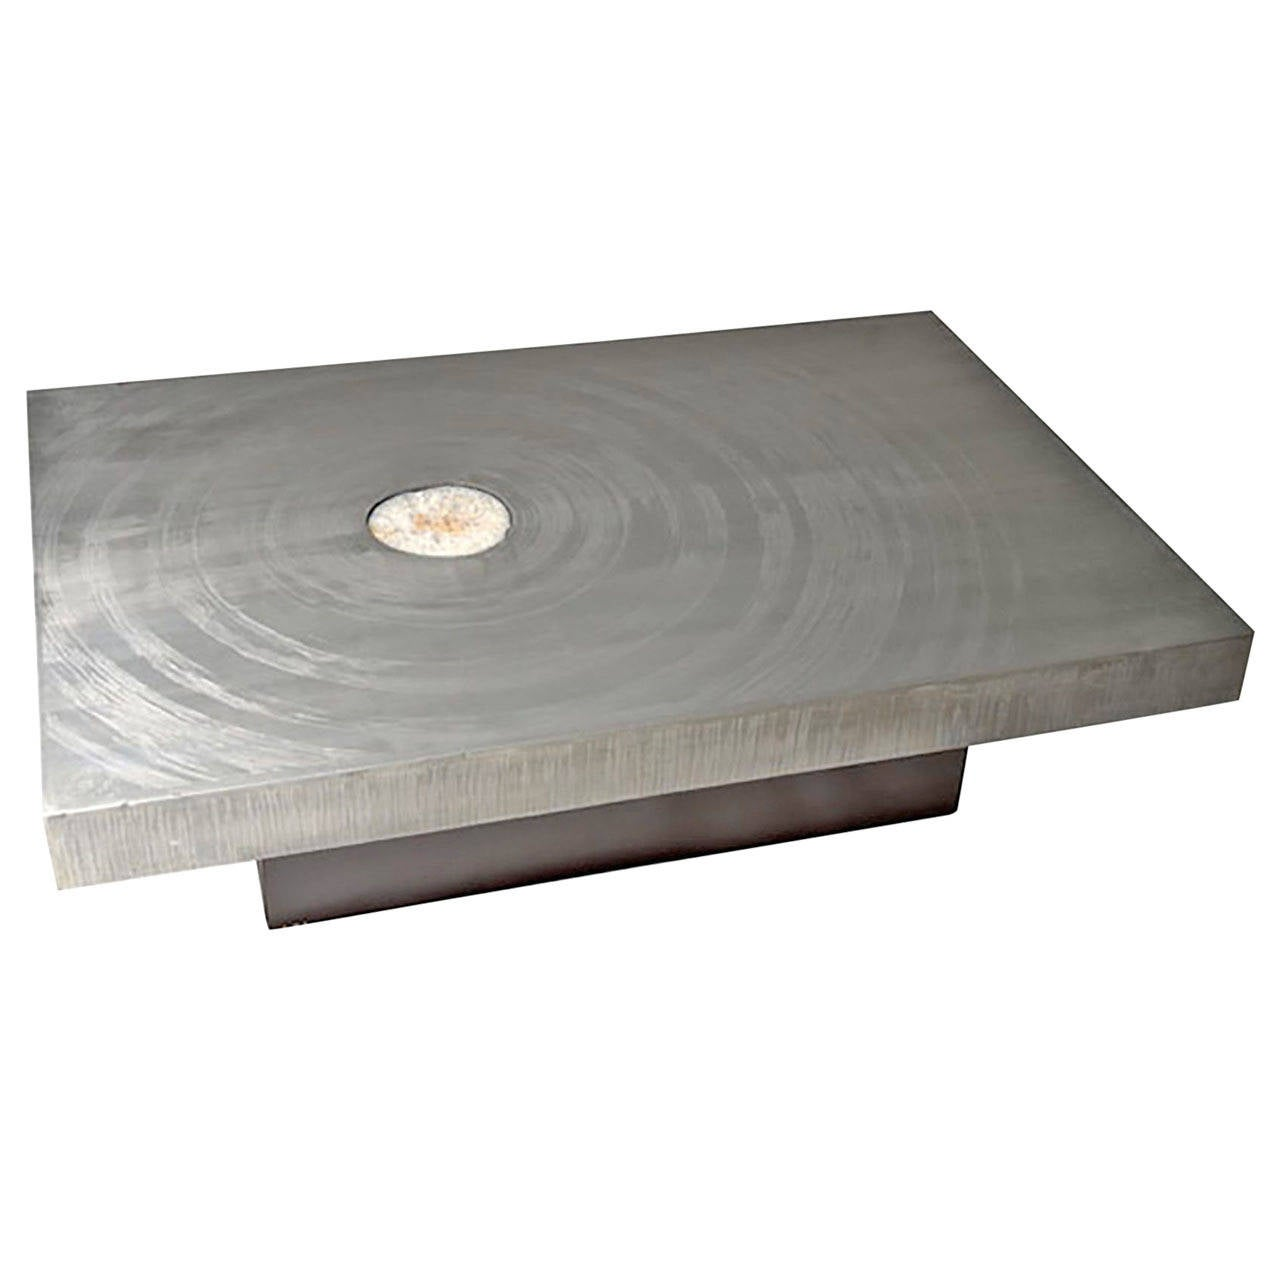 1970s Belgian Etched Aluminum and Agate Coffee Table by Marc D'Haenens